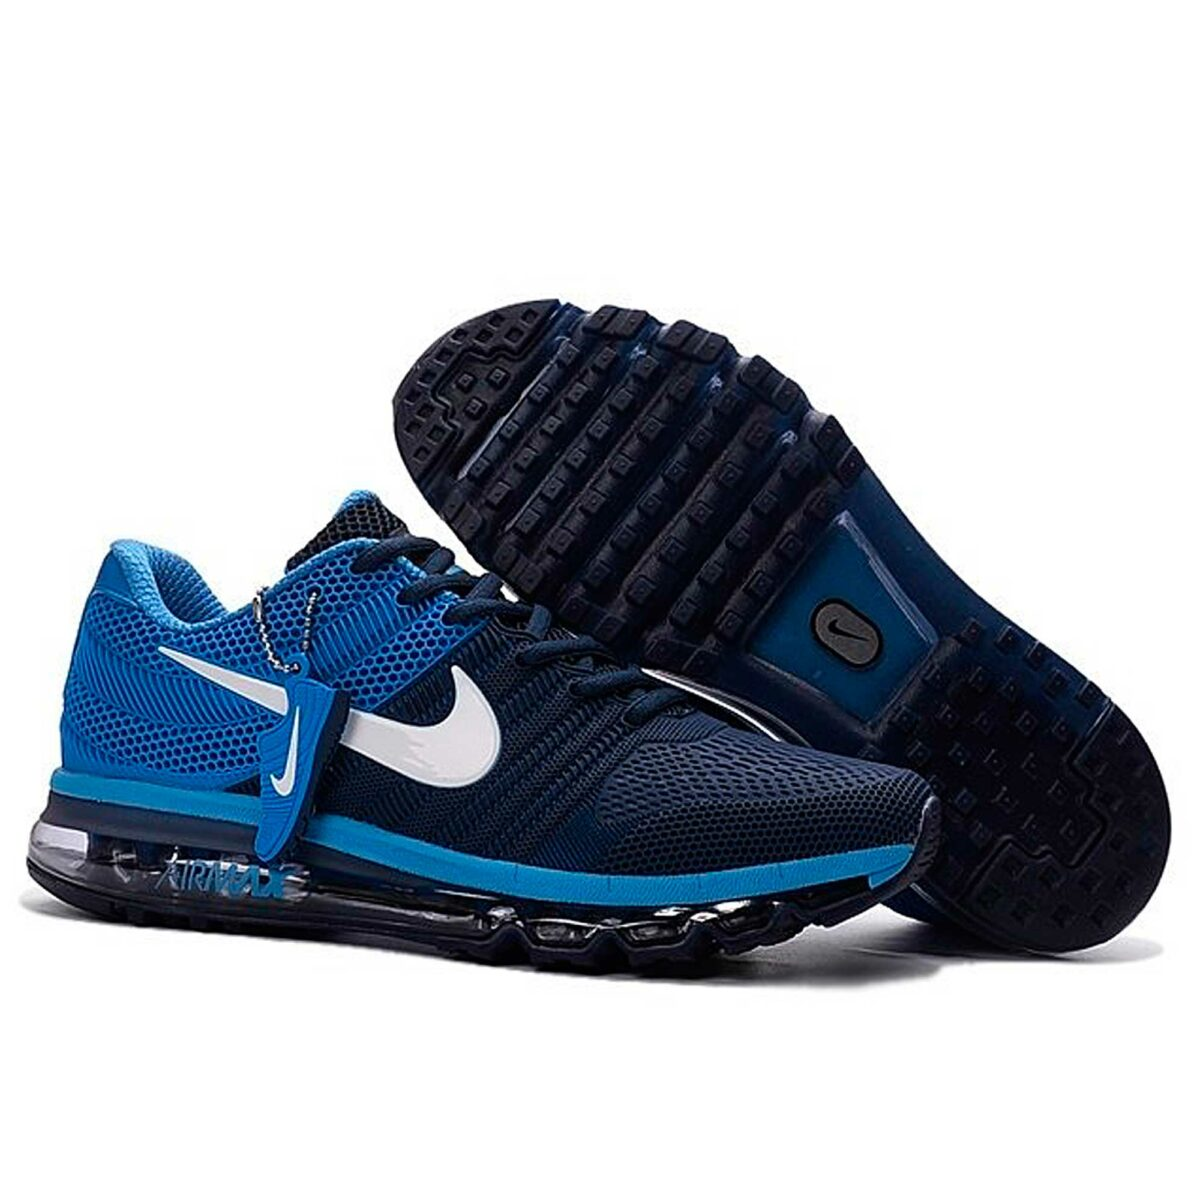 nike air max 2017 KPU dark blue blue 849560-402 купить